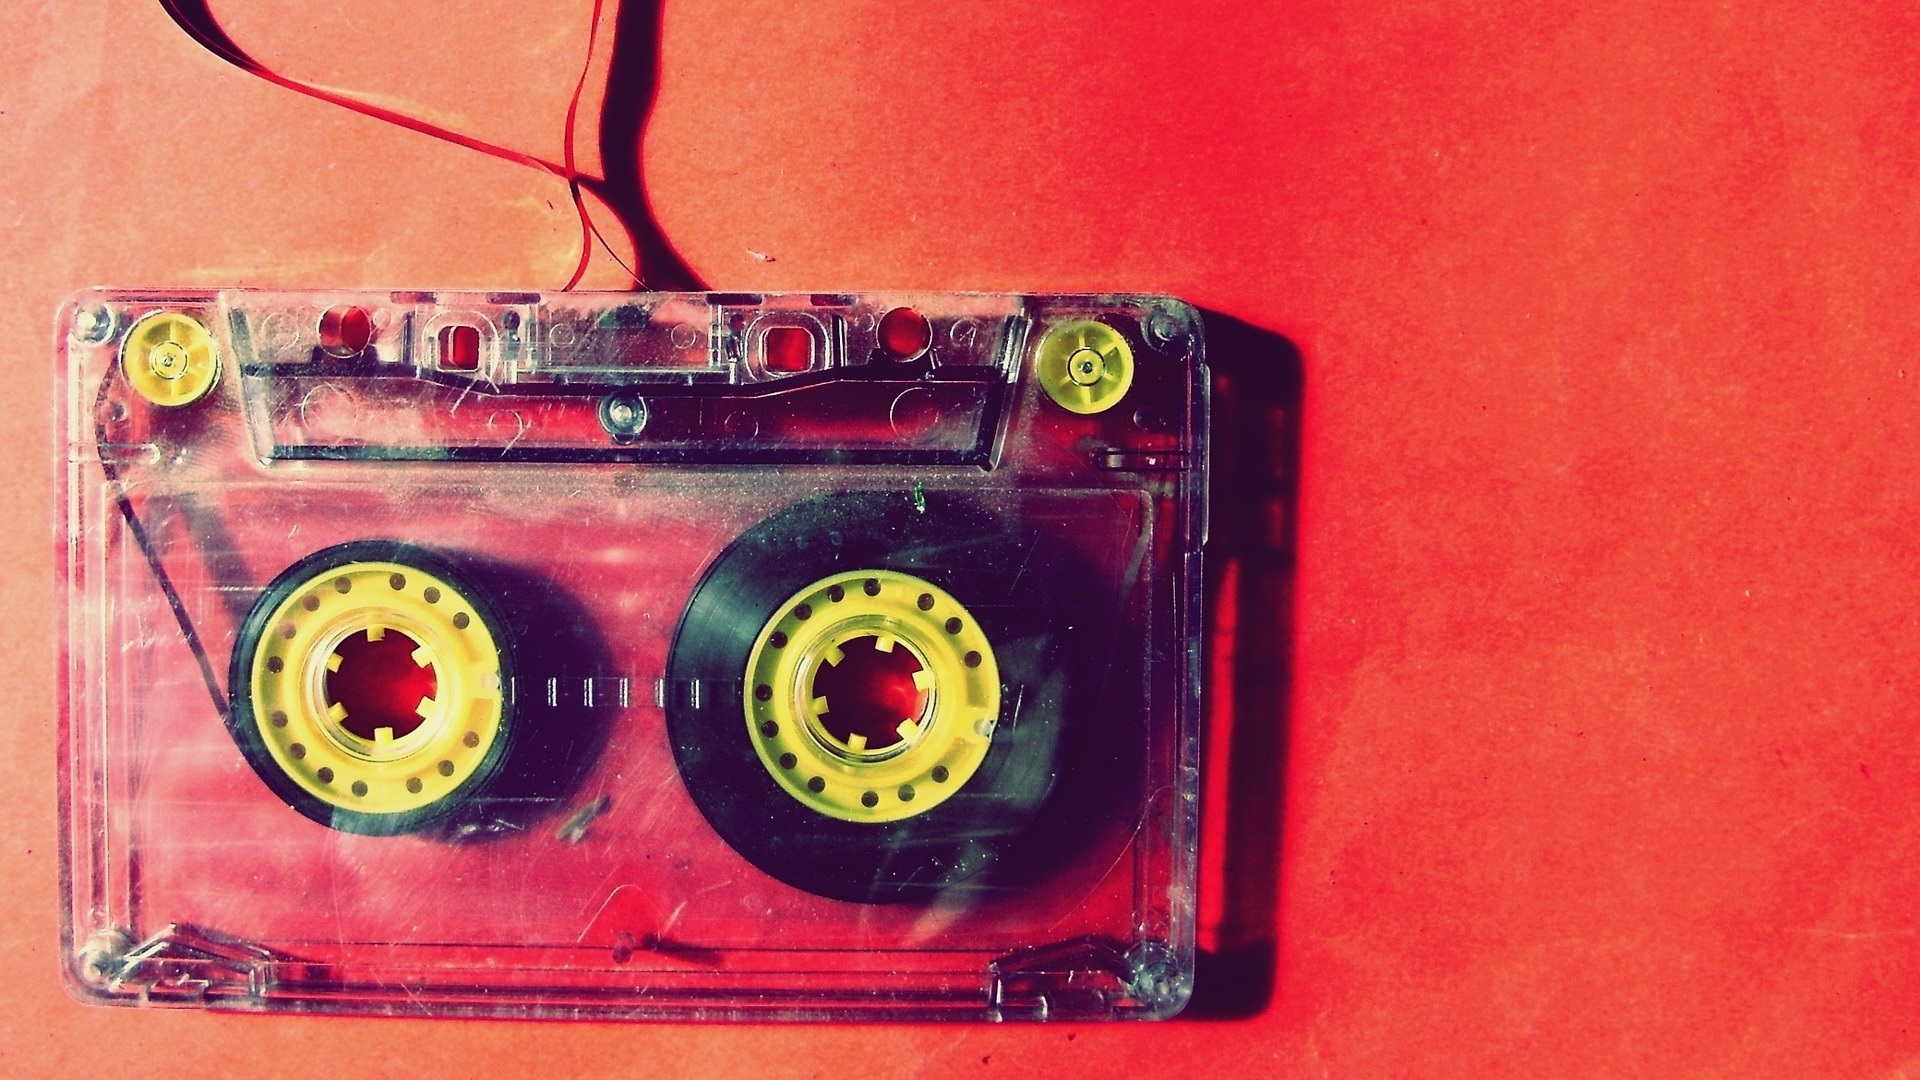 cassette tape on red background